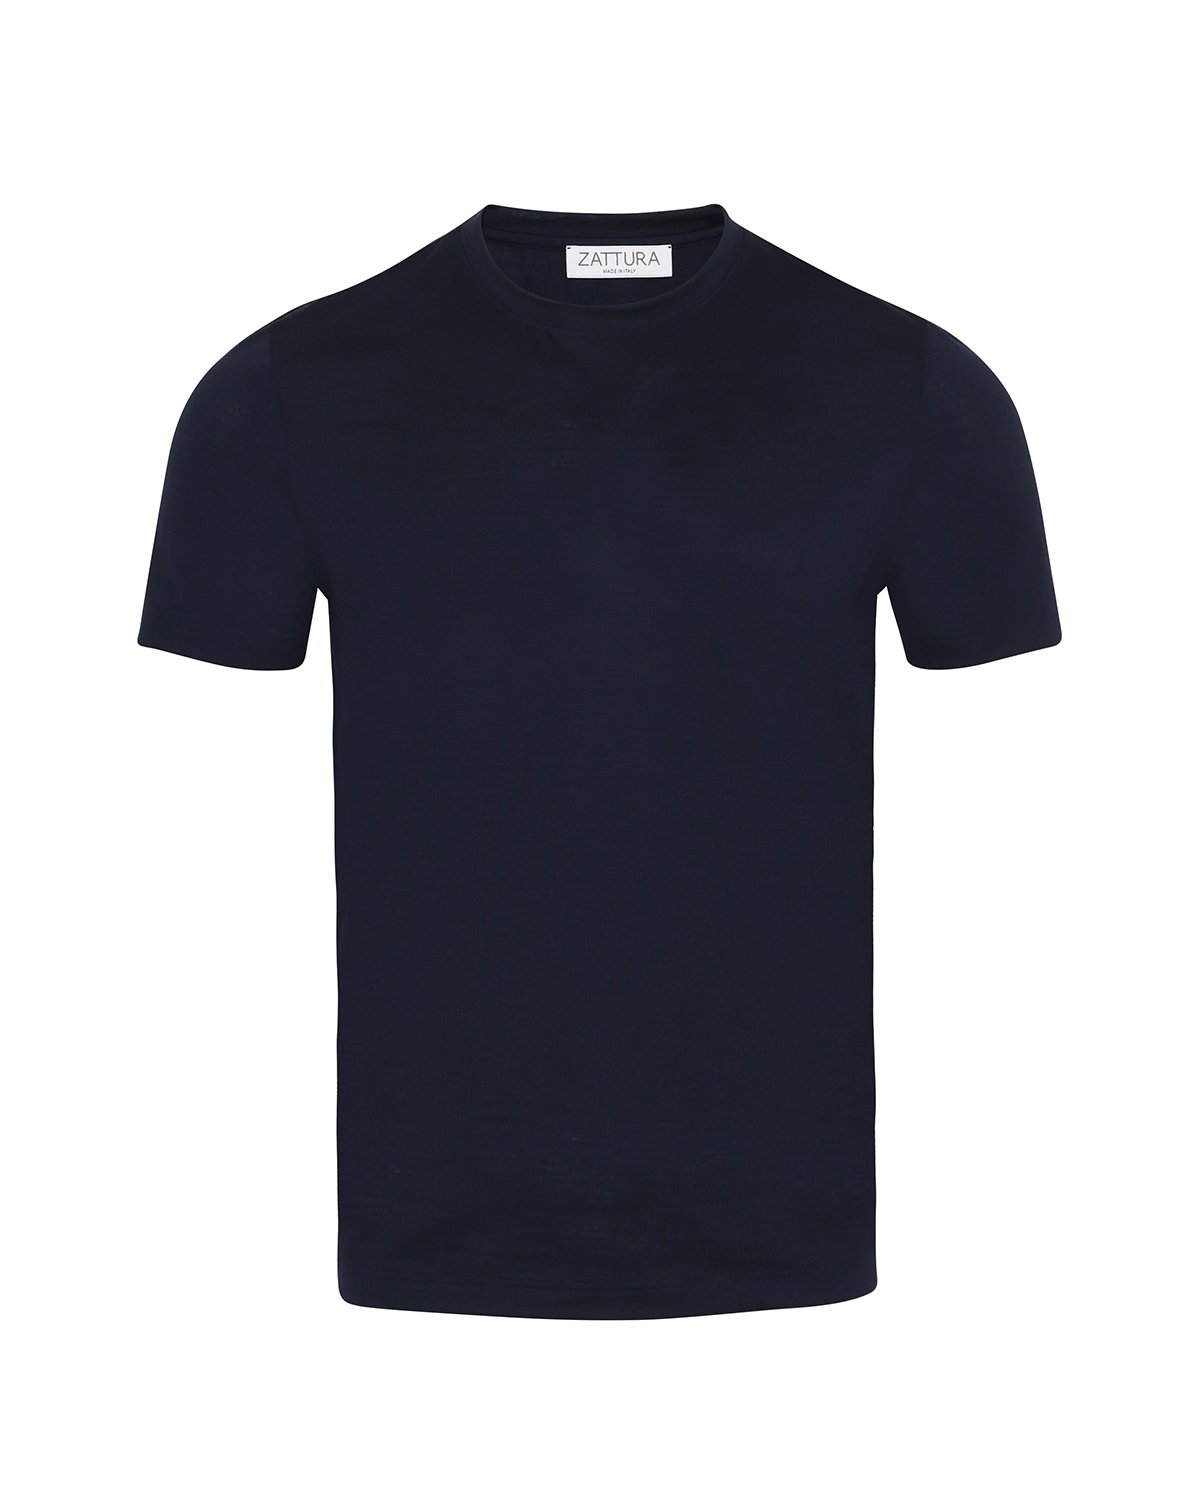 Zattura Wool T-Shirt (Navy) - Union 22